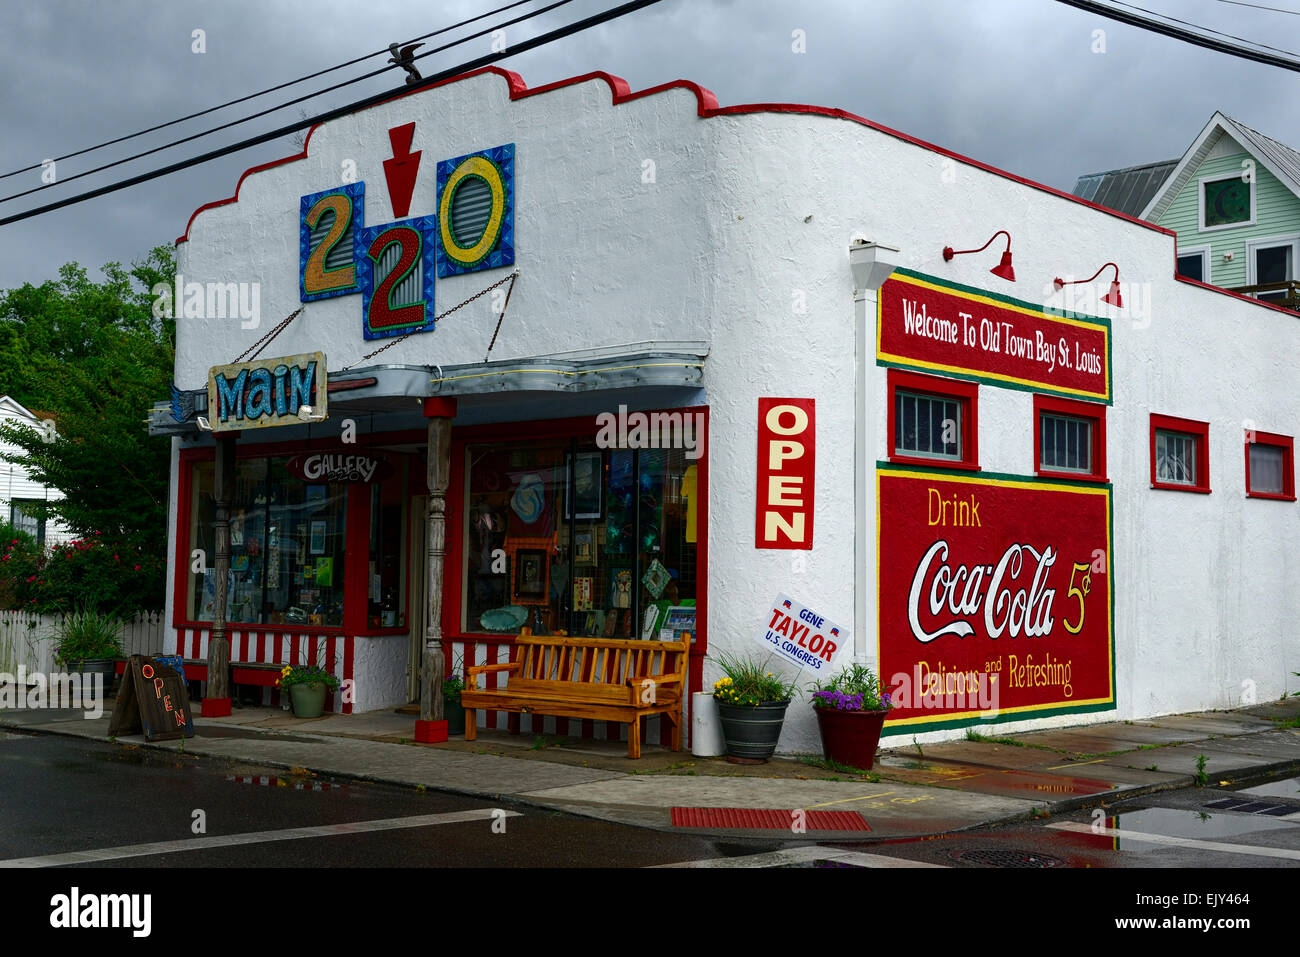 cafe coffee shop refreshments drinks old town bay st louis Mississippi colorful shop historic gulf coast RM USA - Stock Image